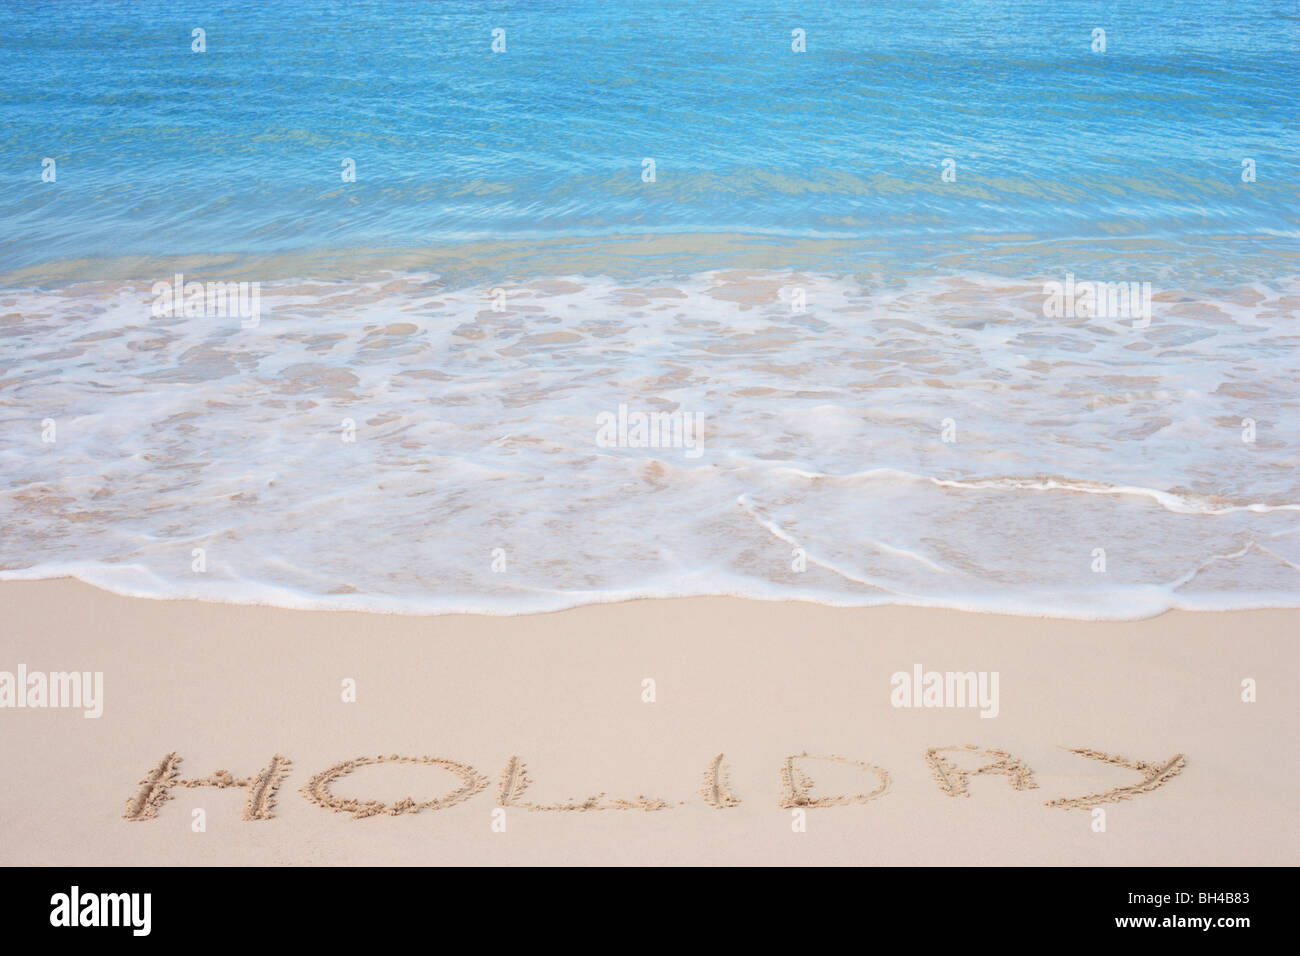 The word 'Holiday' written in the sand on a tropical beach - Stock Image